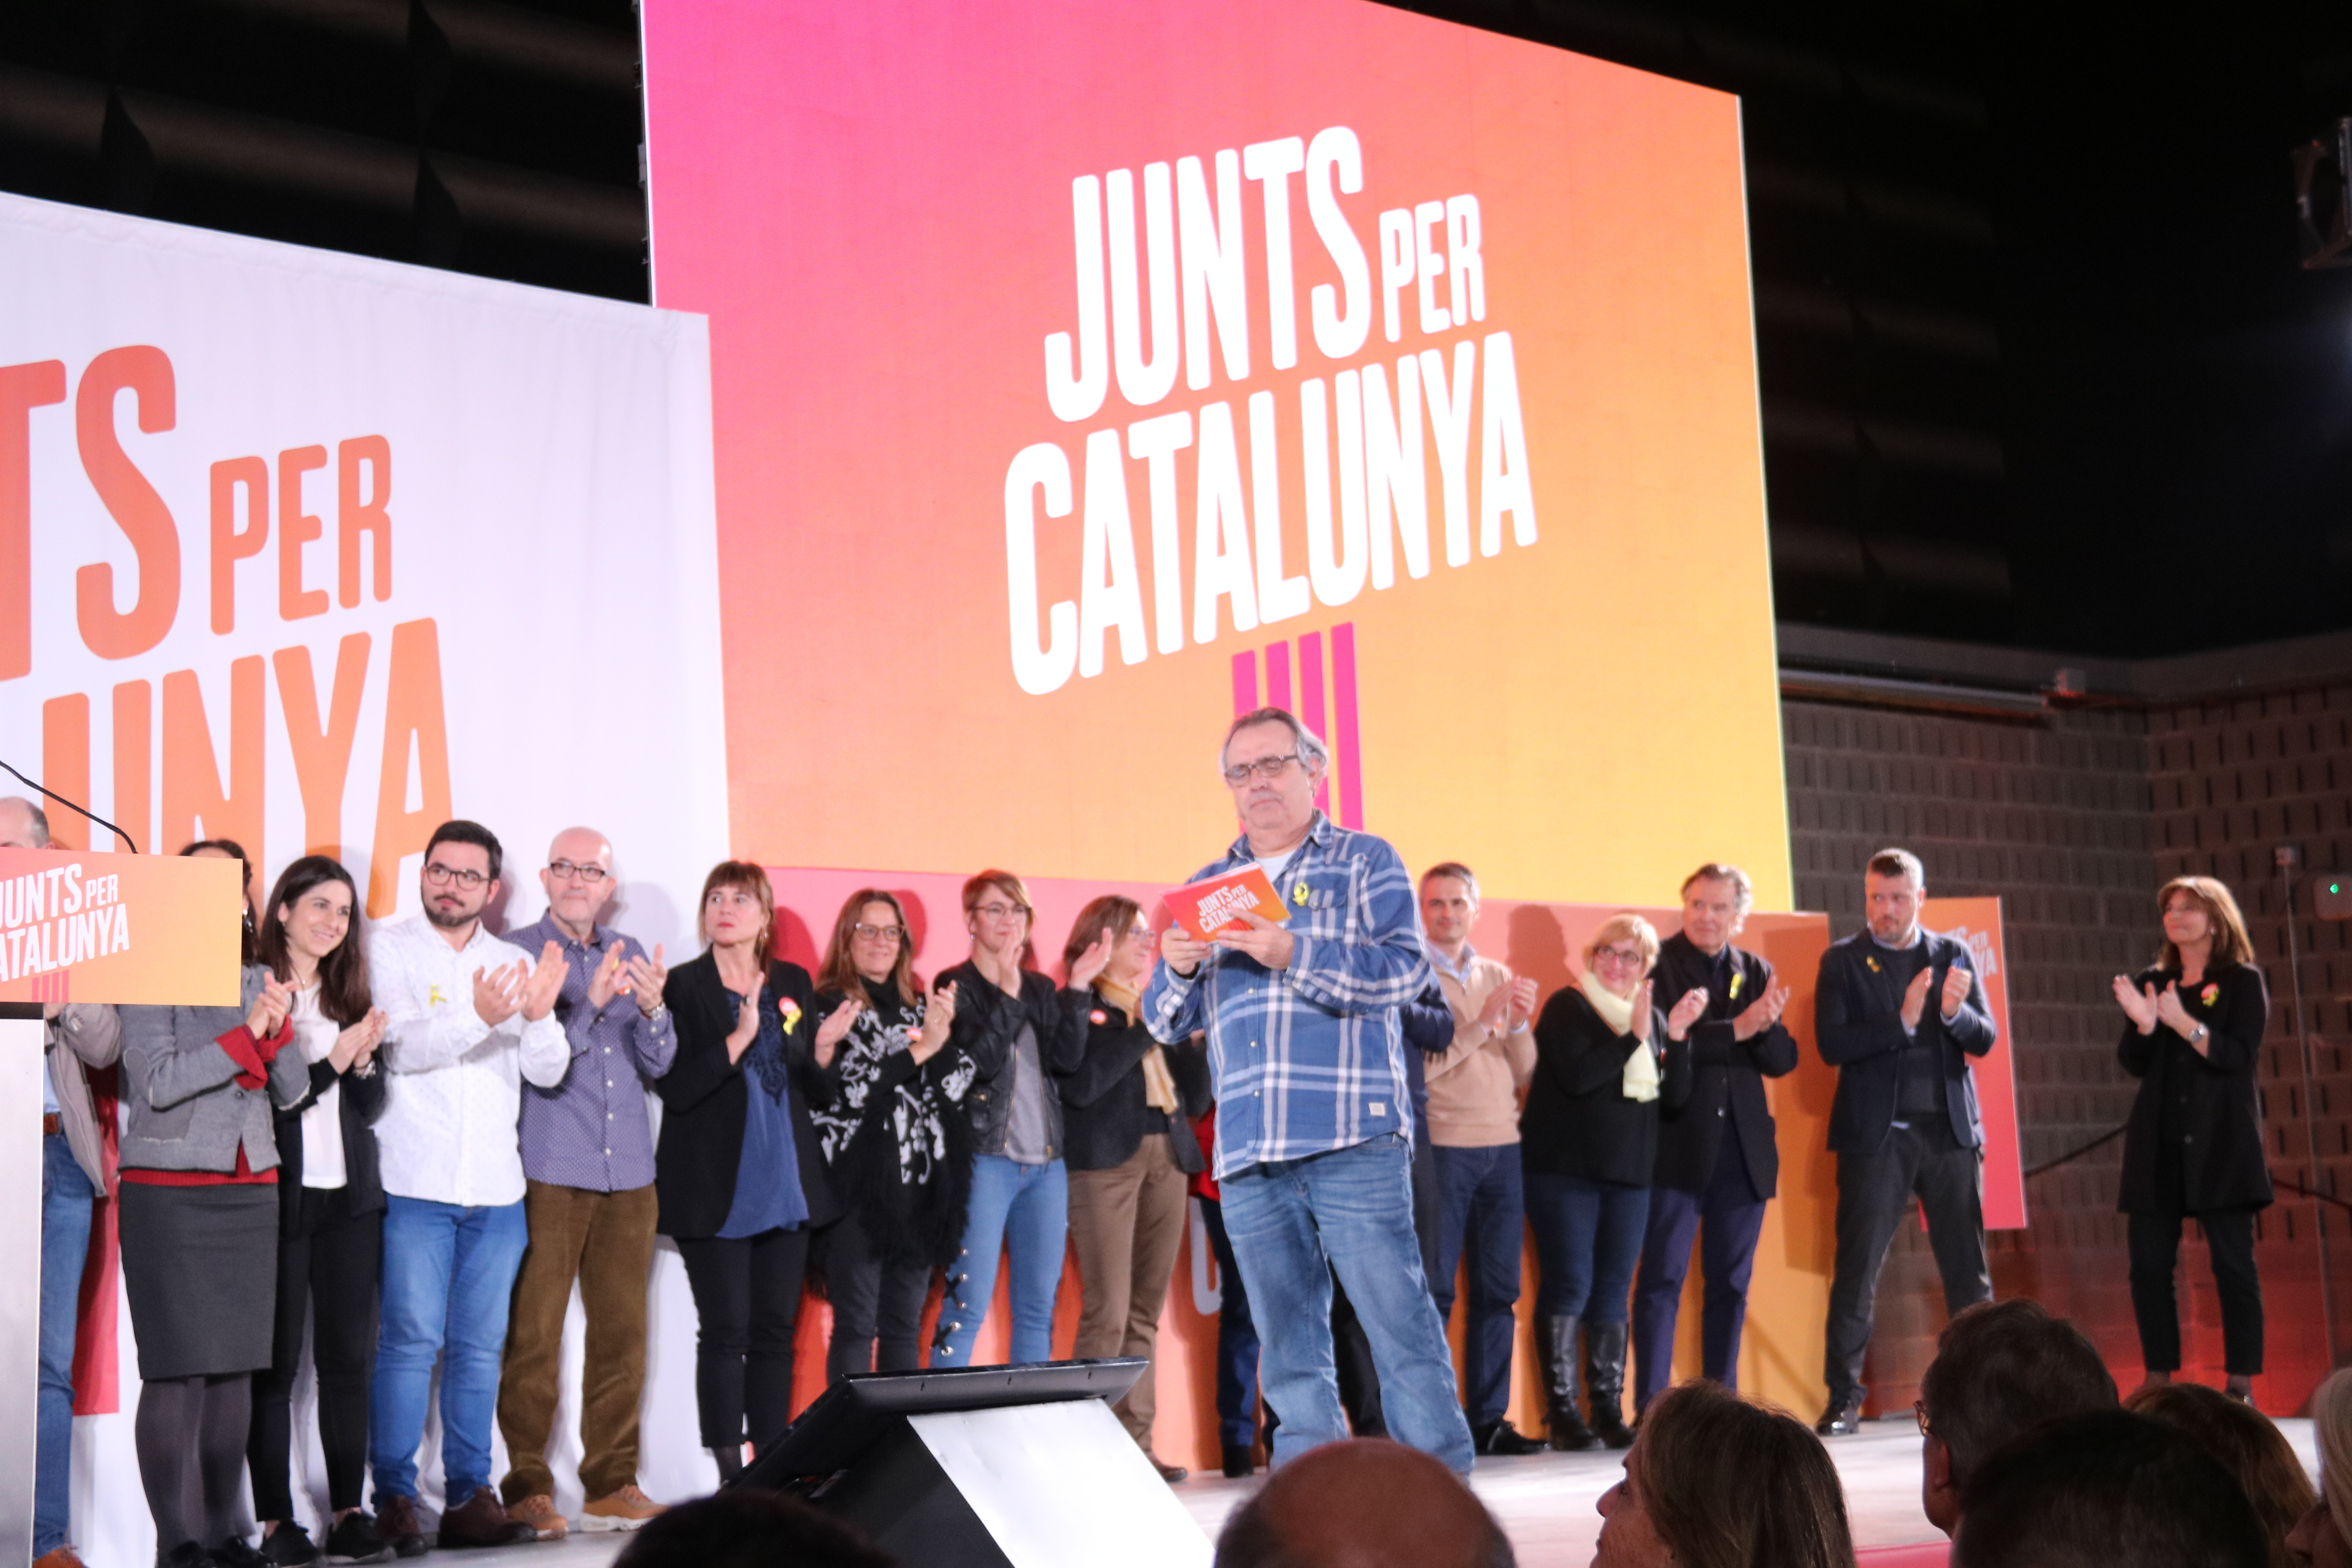 Together for Catalonia event on Monday evening (by Bernat Vilaró)